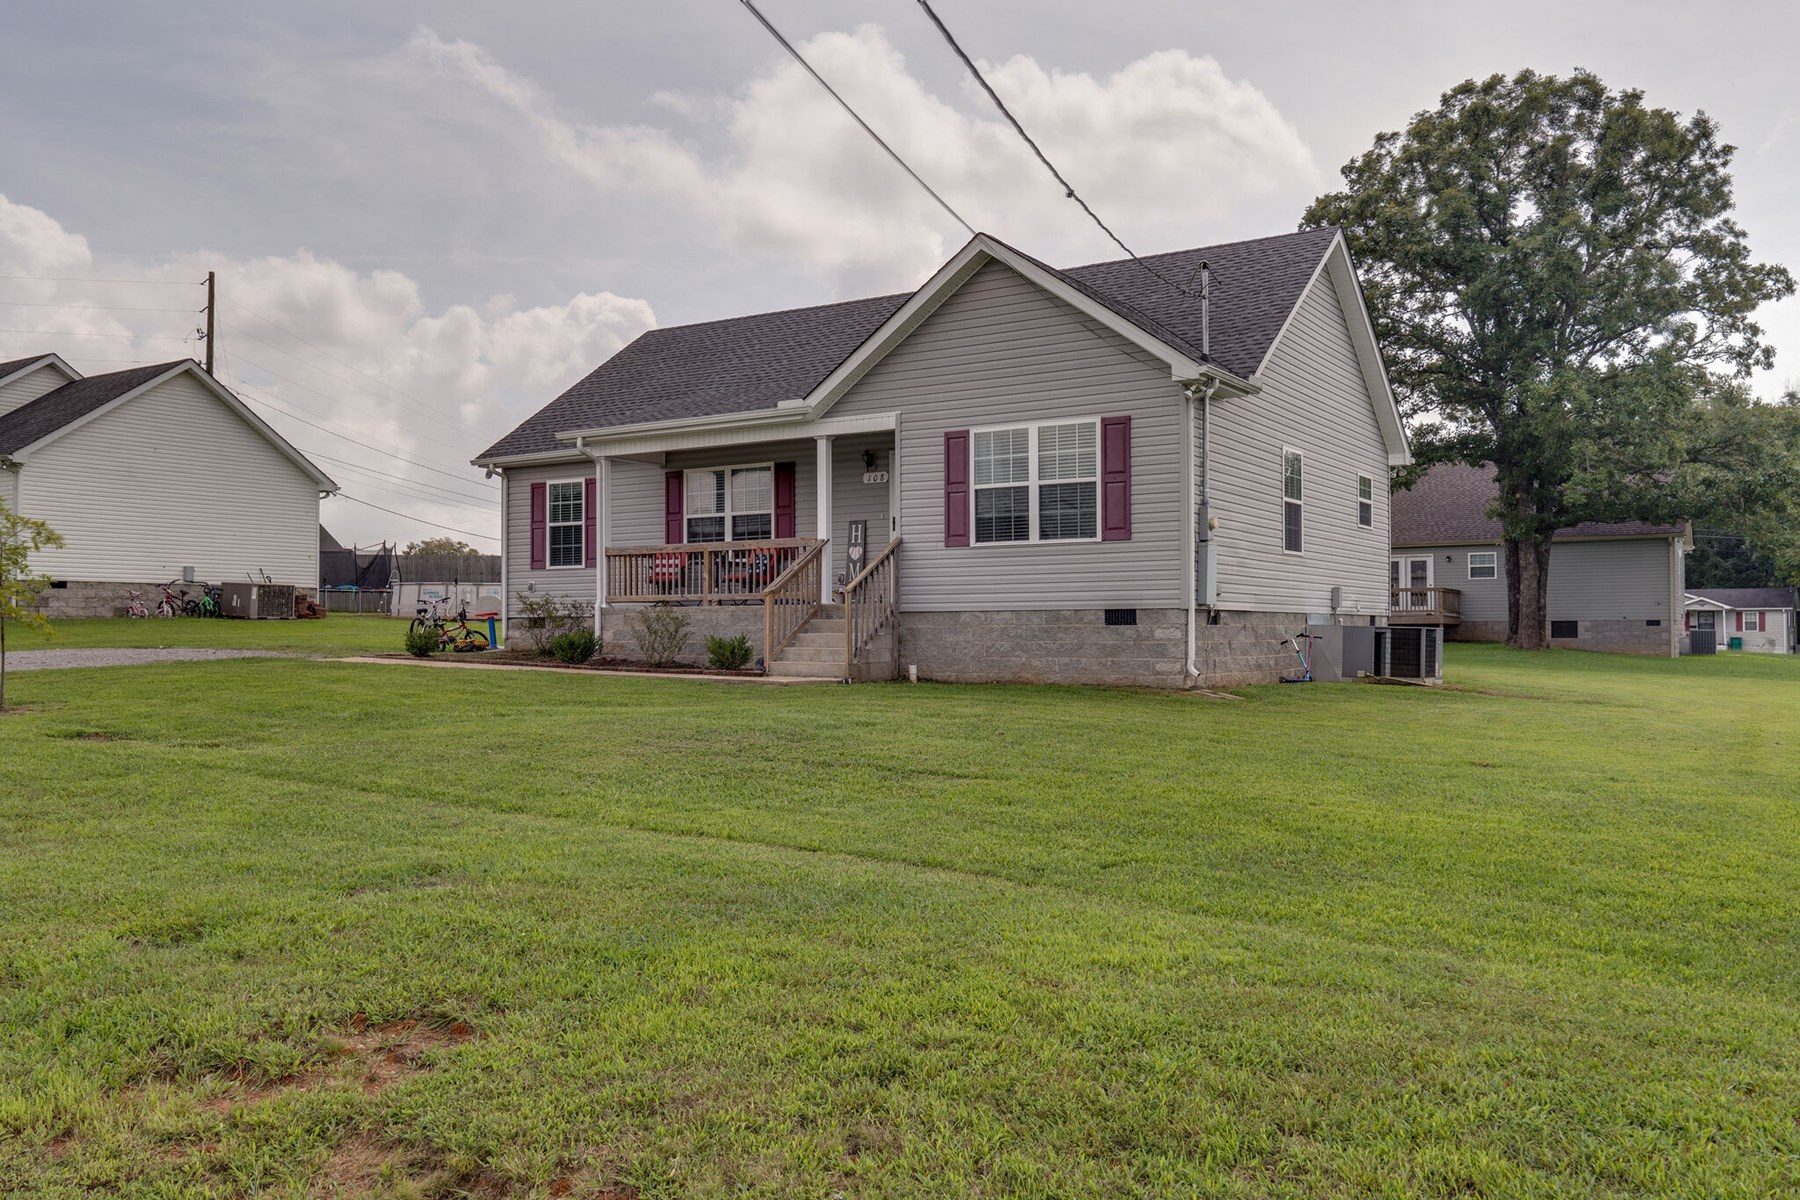 Home in Town for Sale on Acre Lot, in Lewisburg, Tennessee